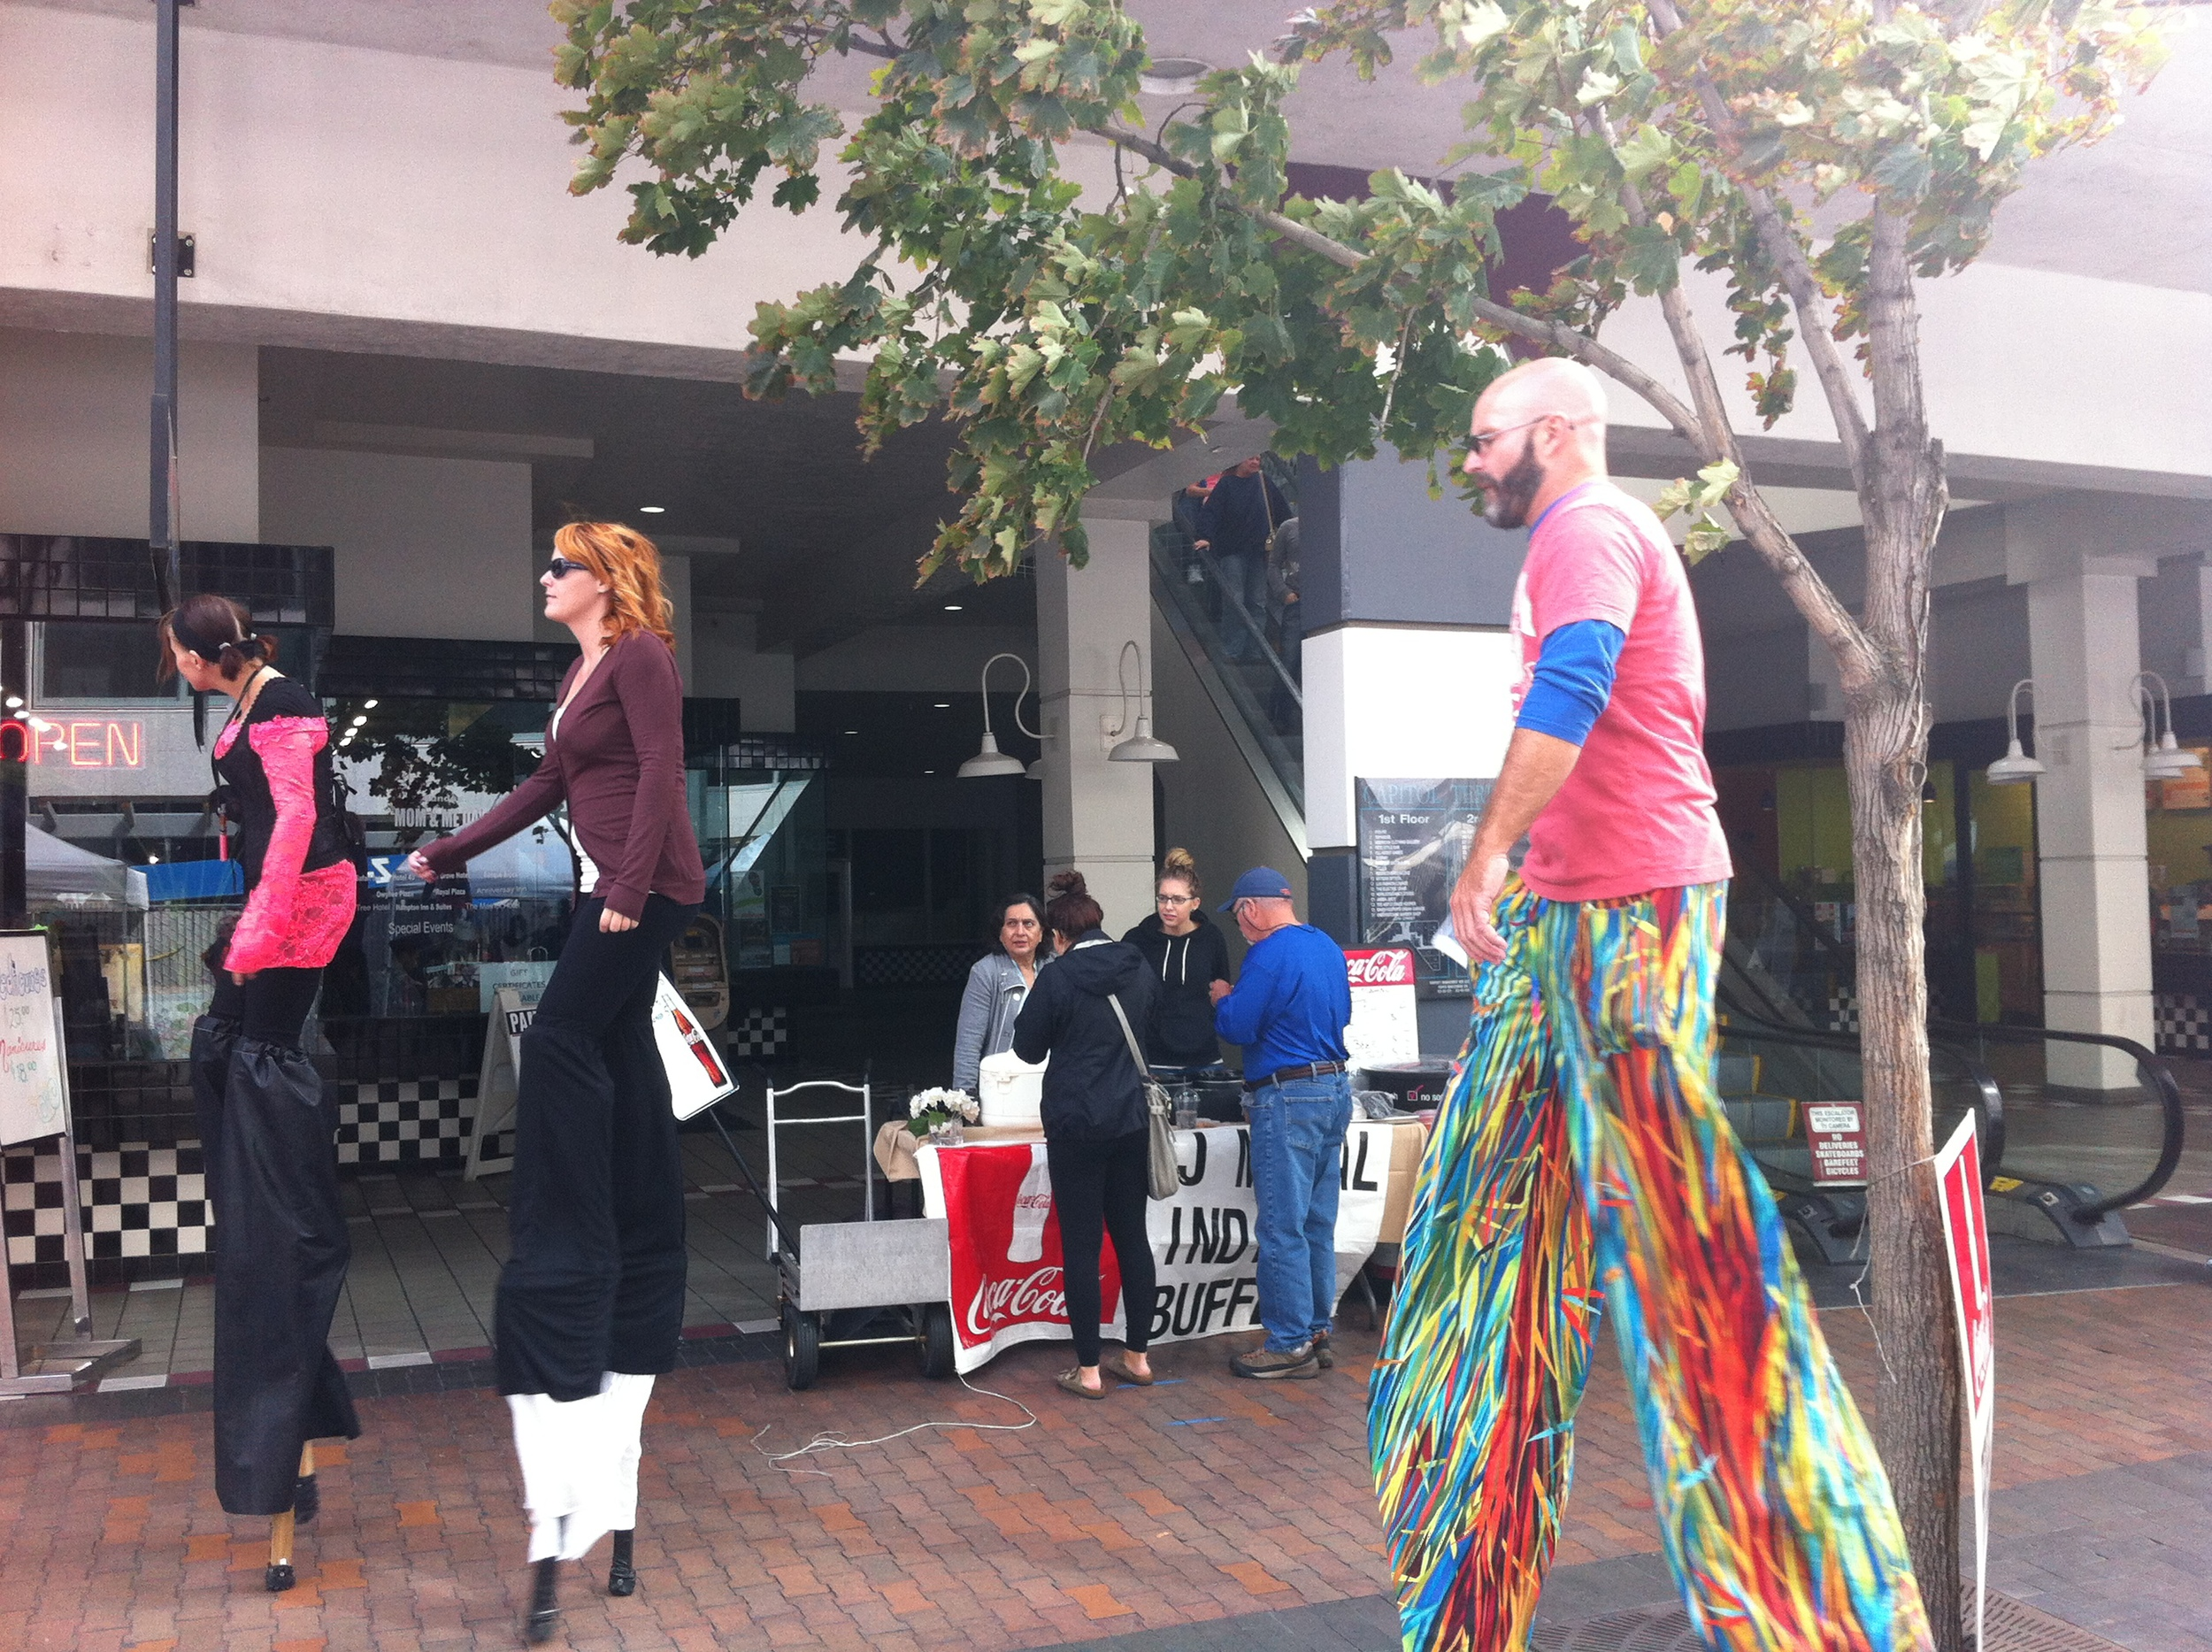 Street performers on 8th Street add fun and surprise to this pedestrian area.